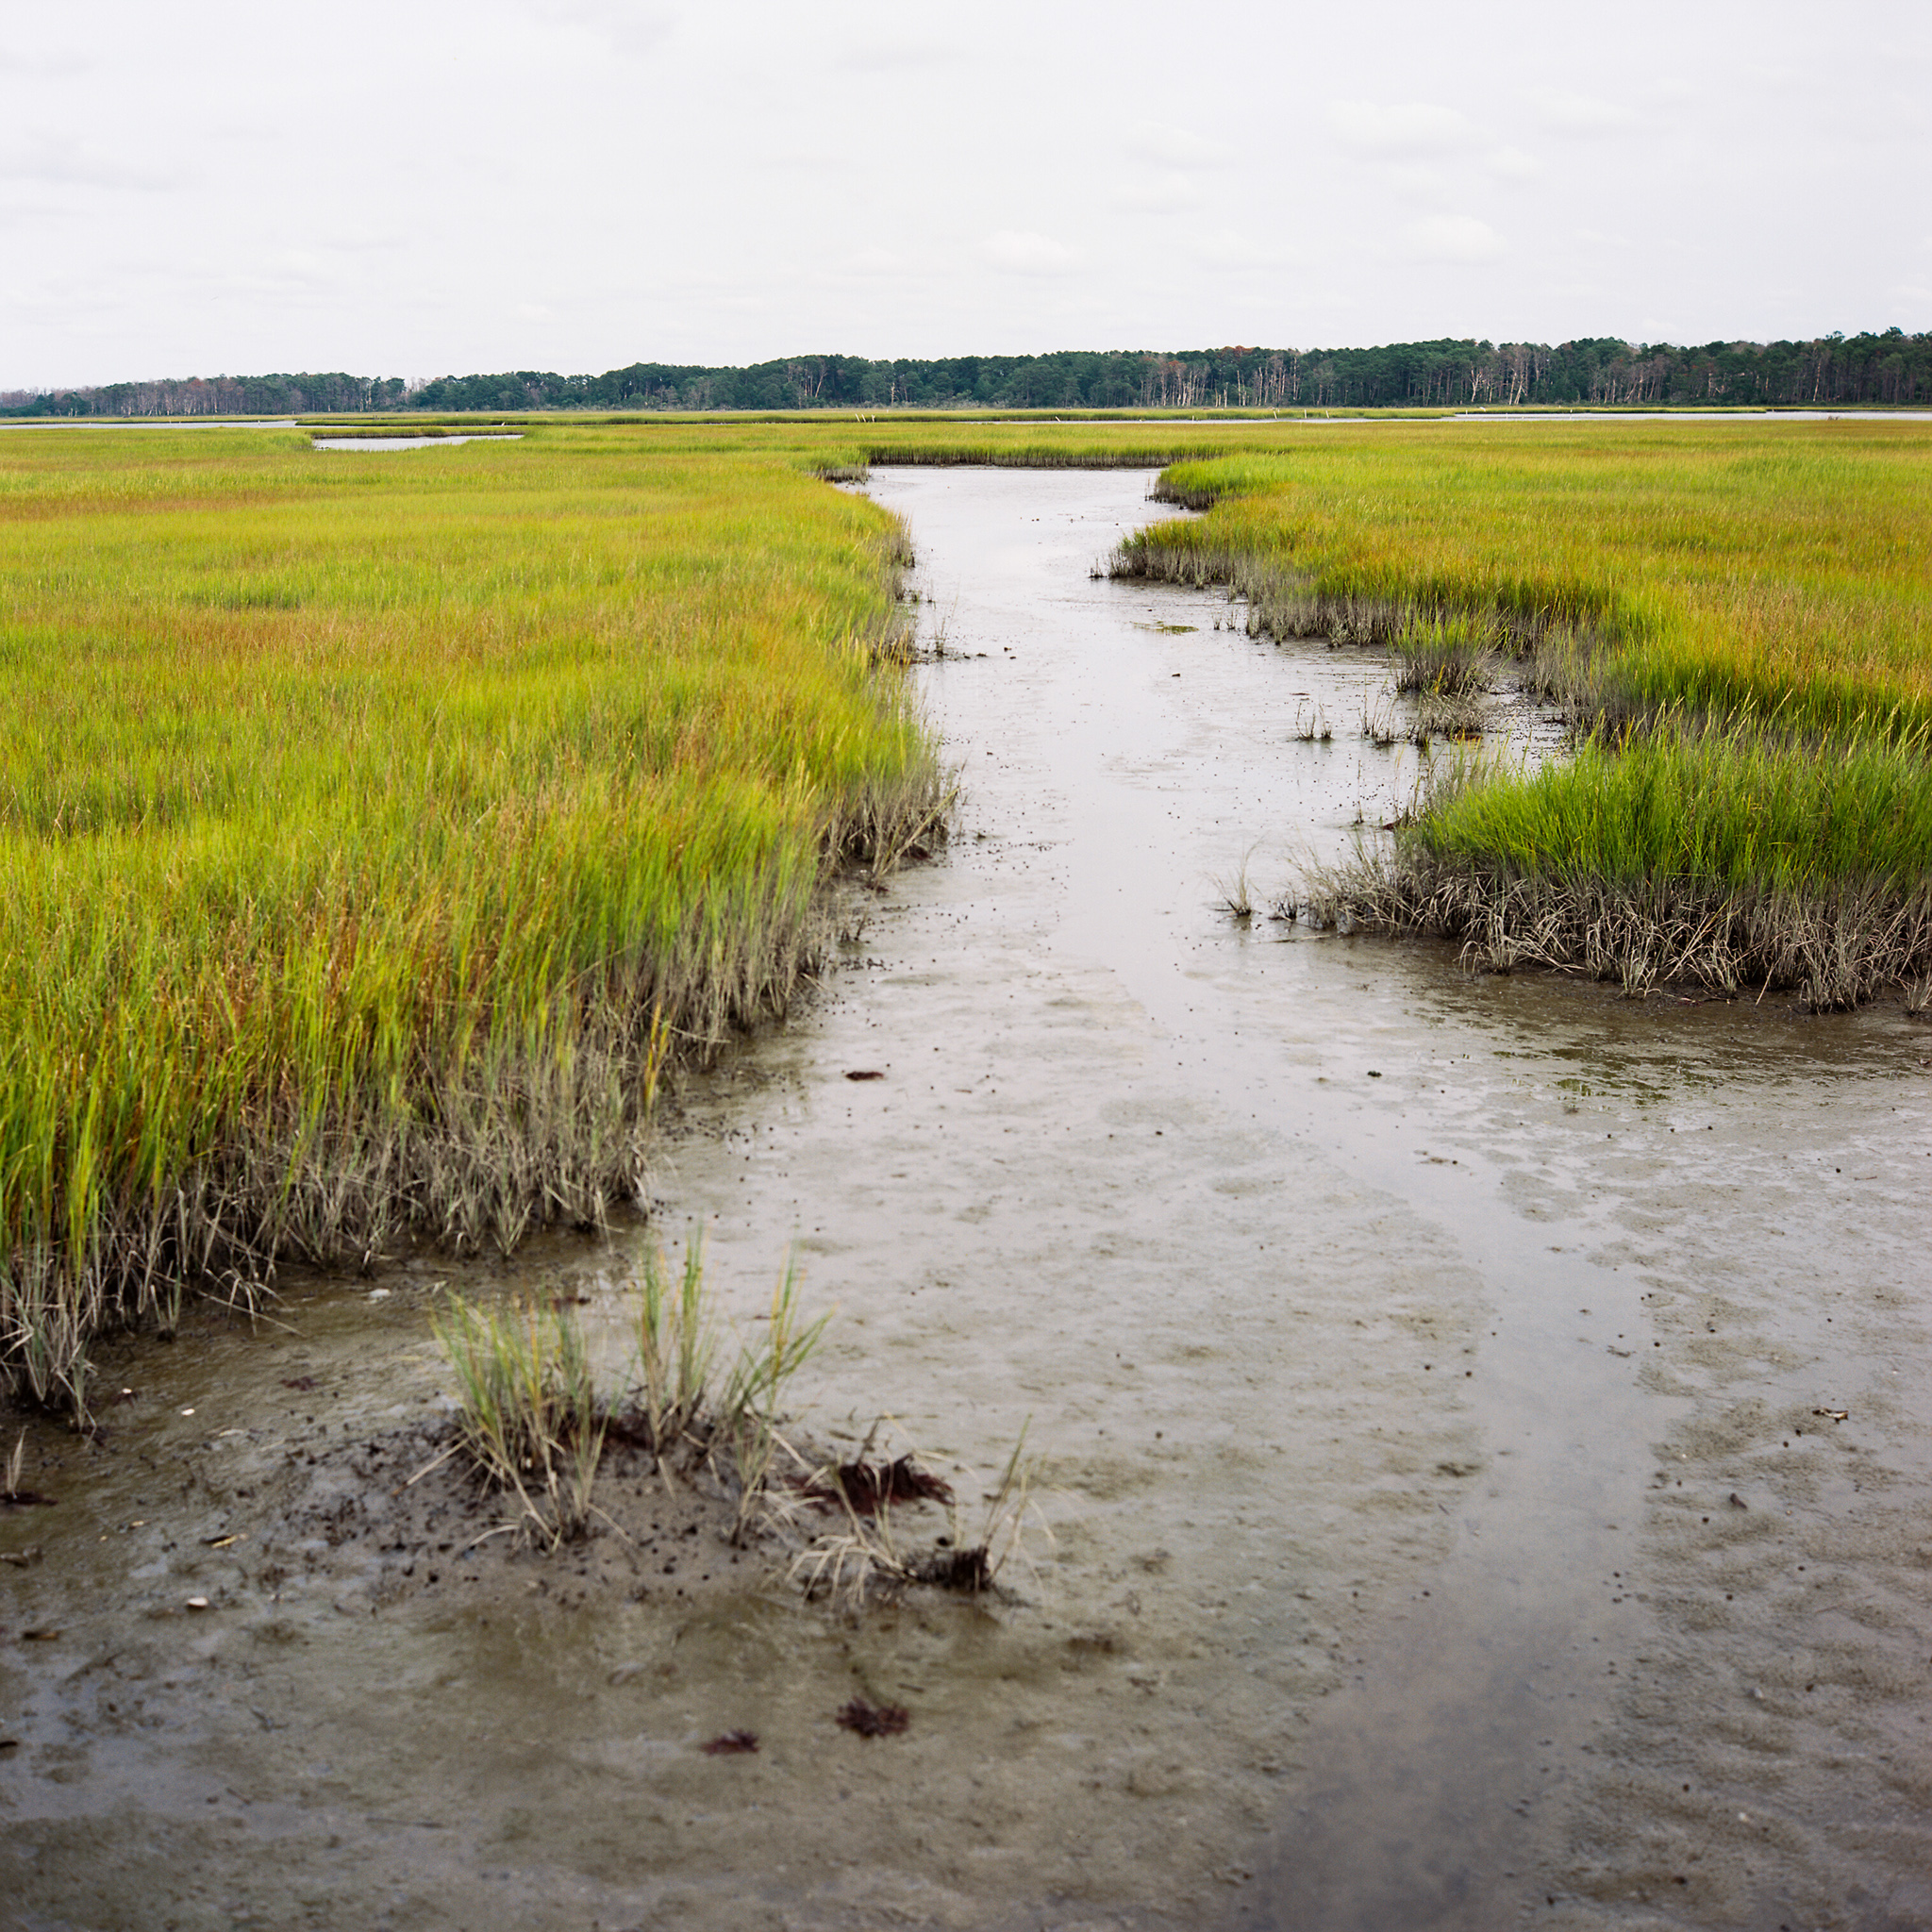 Wetland #1, Chincoteague, VA, 2016